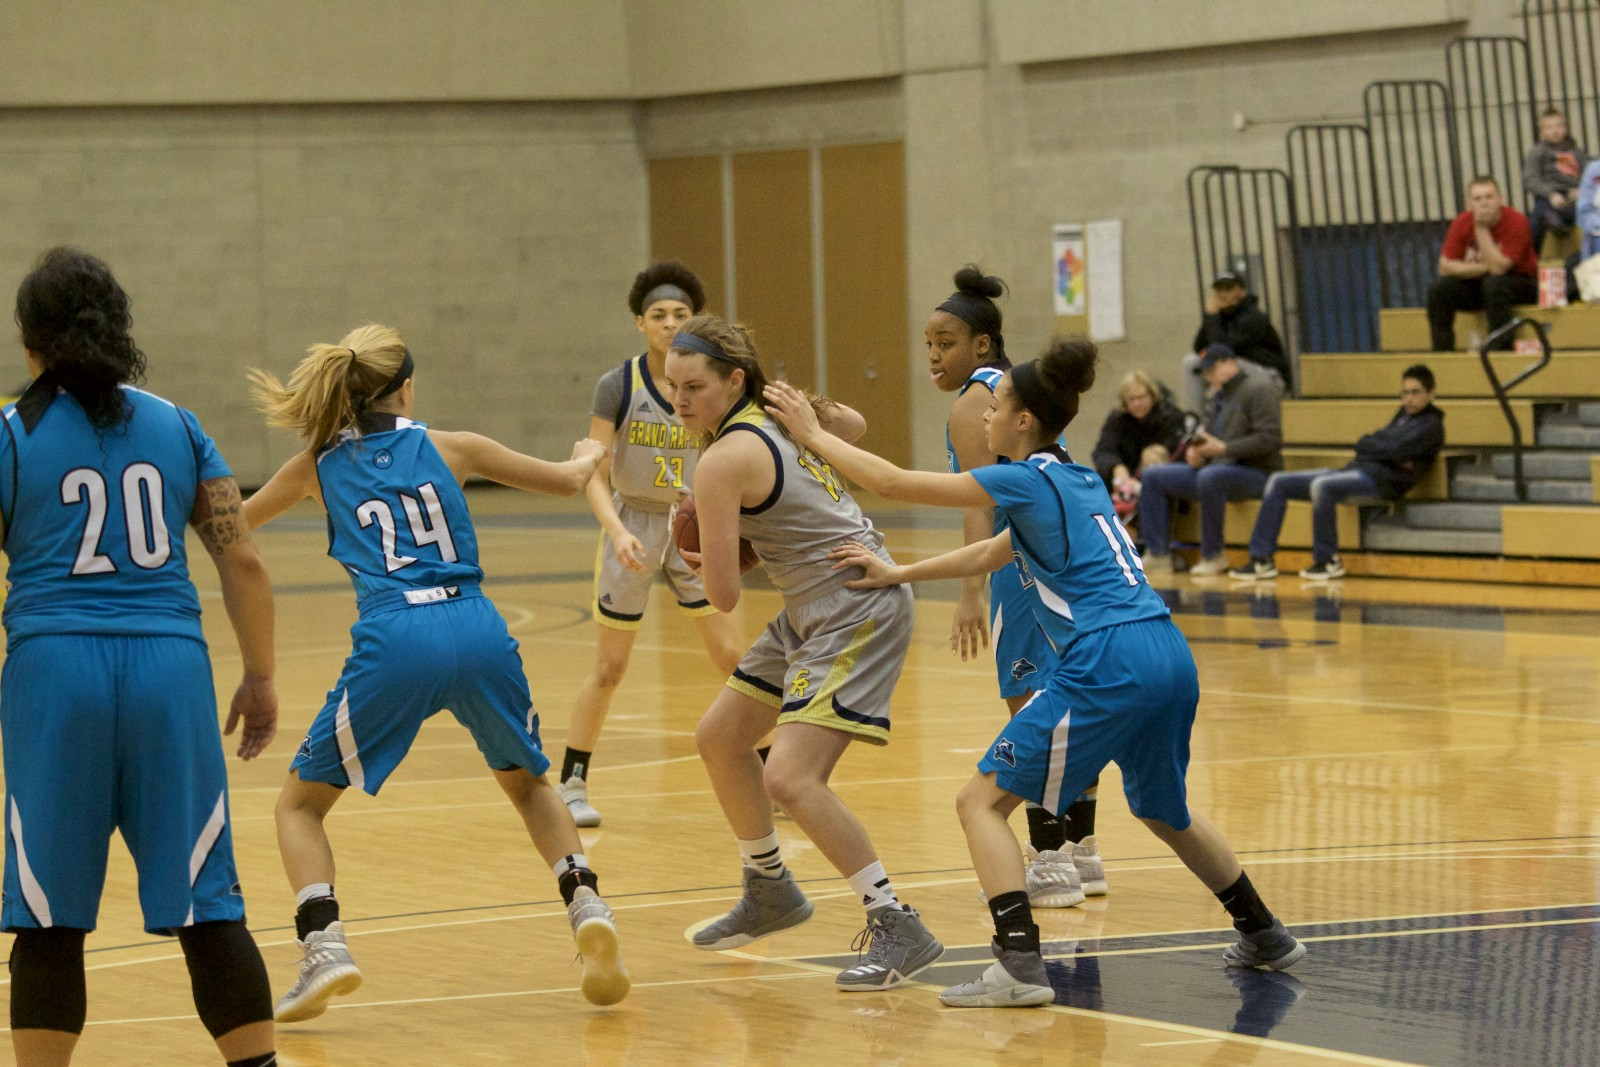 Freshman Guard, #13, Josie Manion towards the top of the key looking to pass the ball as two KVCC defenders try to knock the ball away.